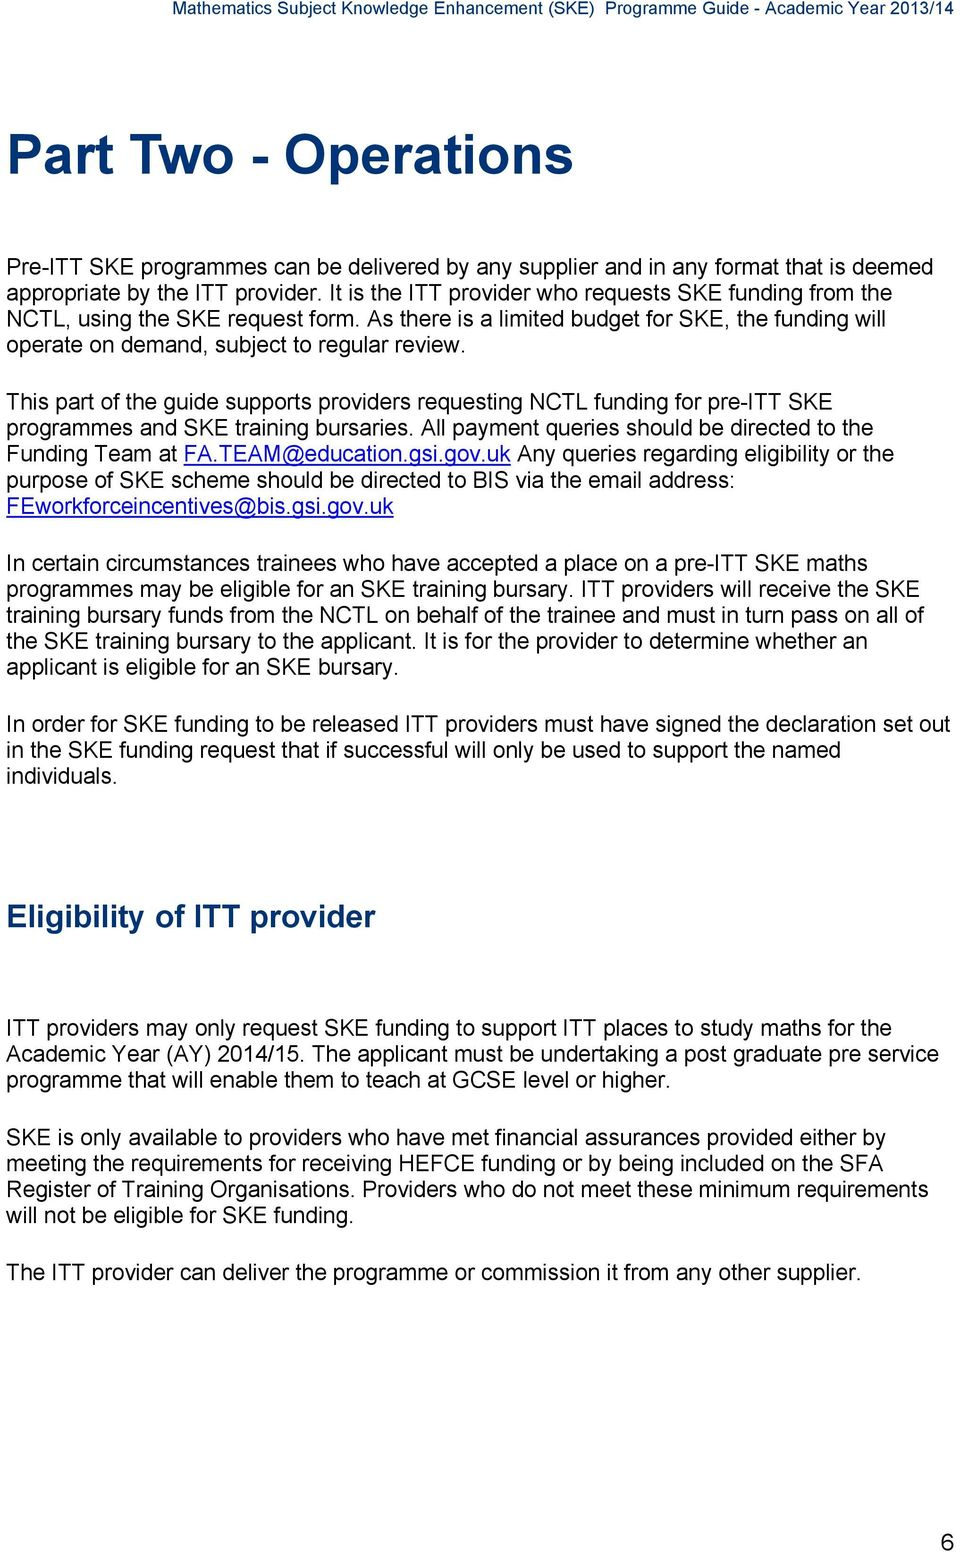 This part of the guide supports providers requesting NCTL funding for pre-itt SKE programmes and SKE training bursaries. All payment queries should be directed to the Funding Team at FA.